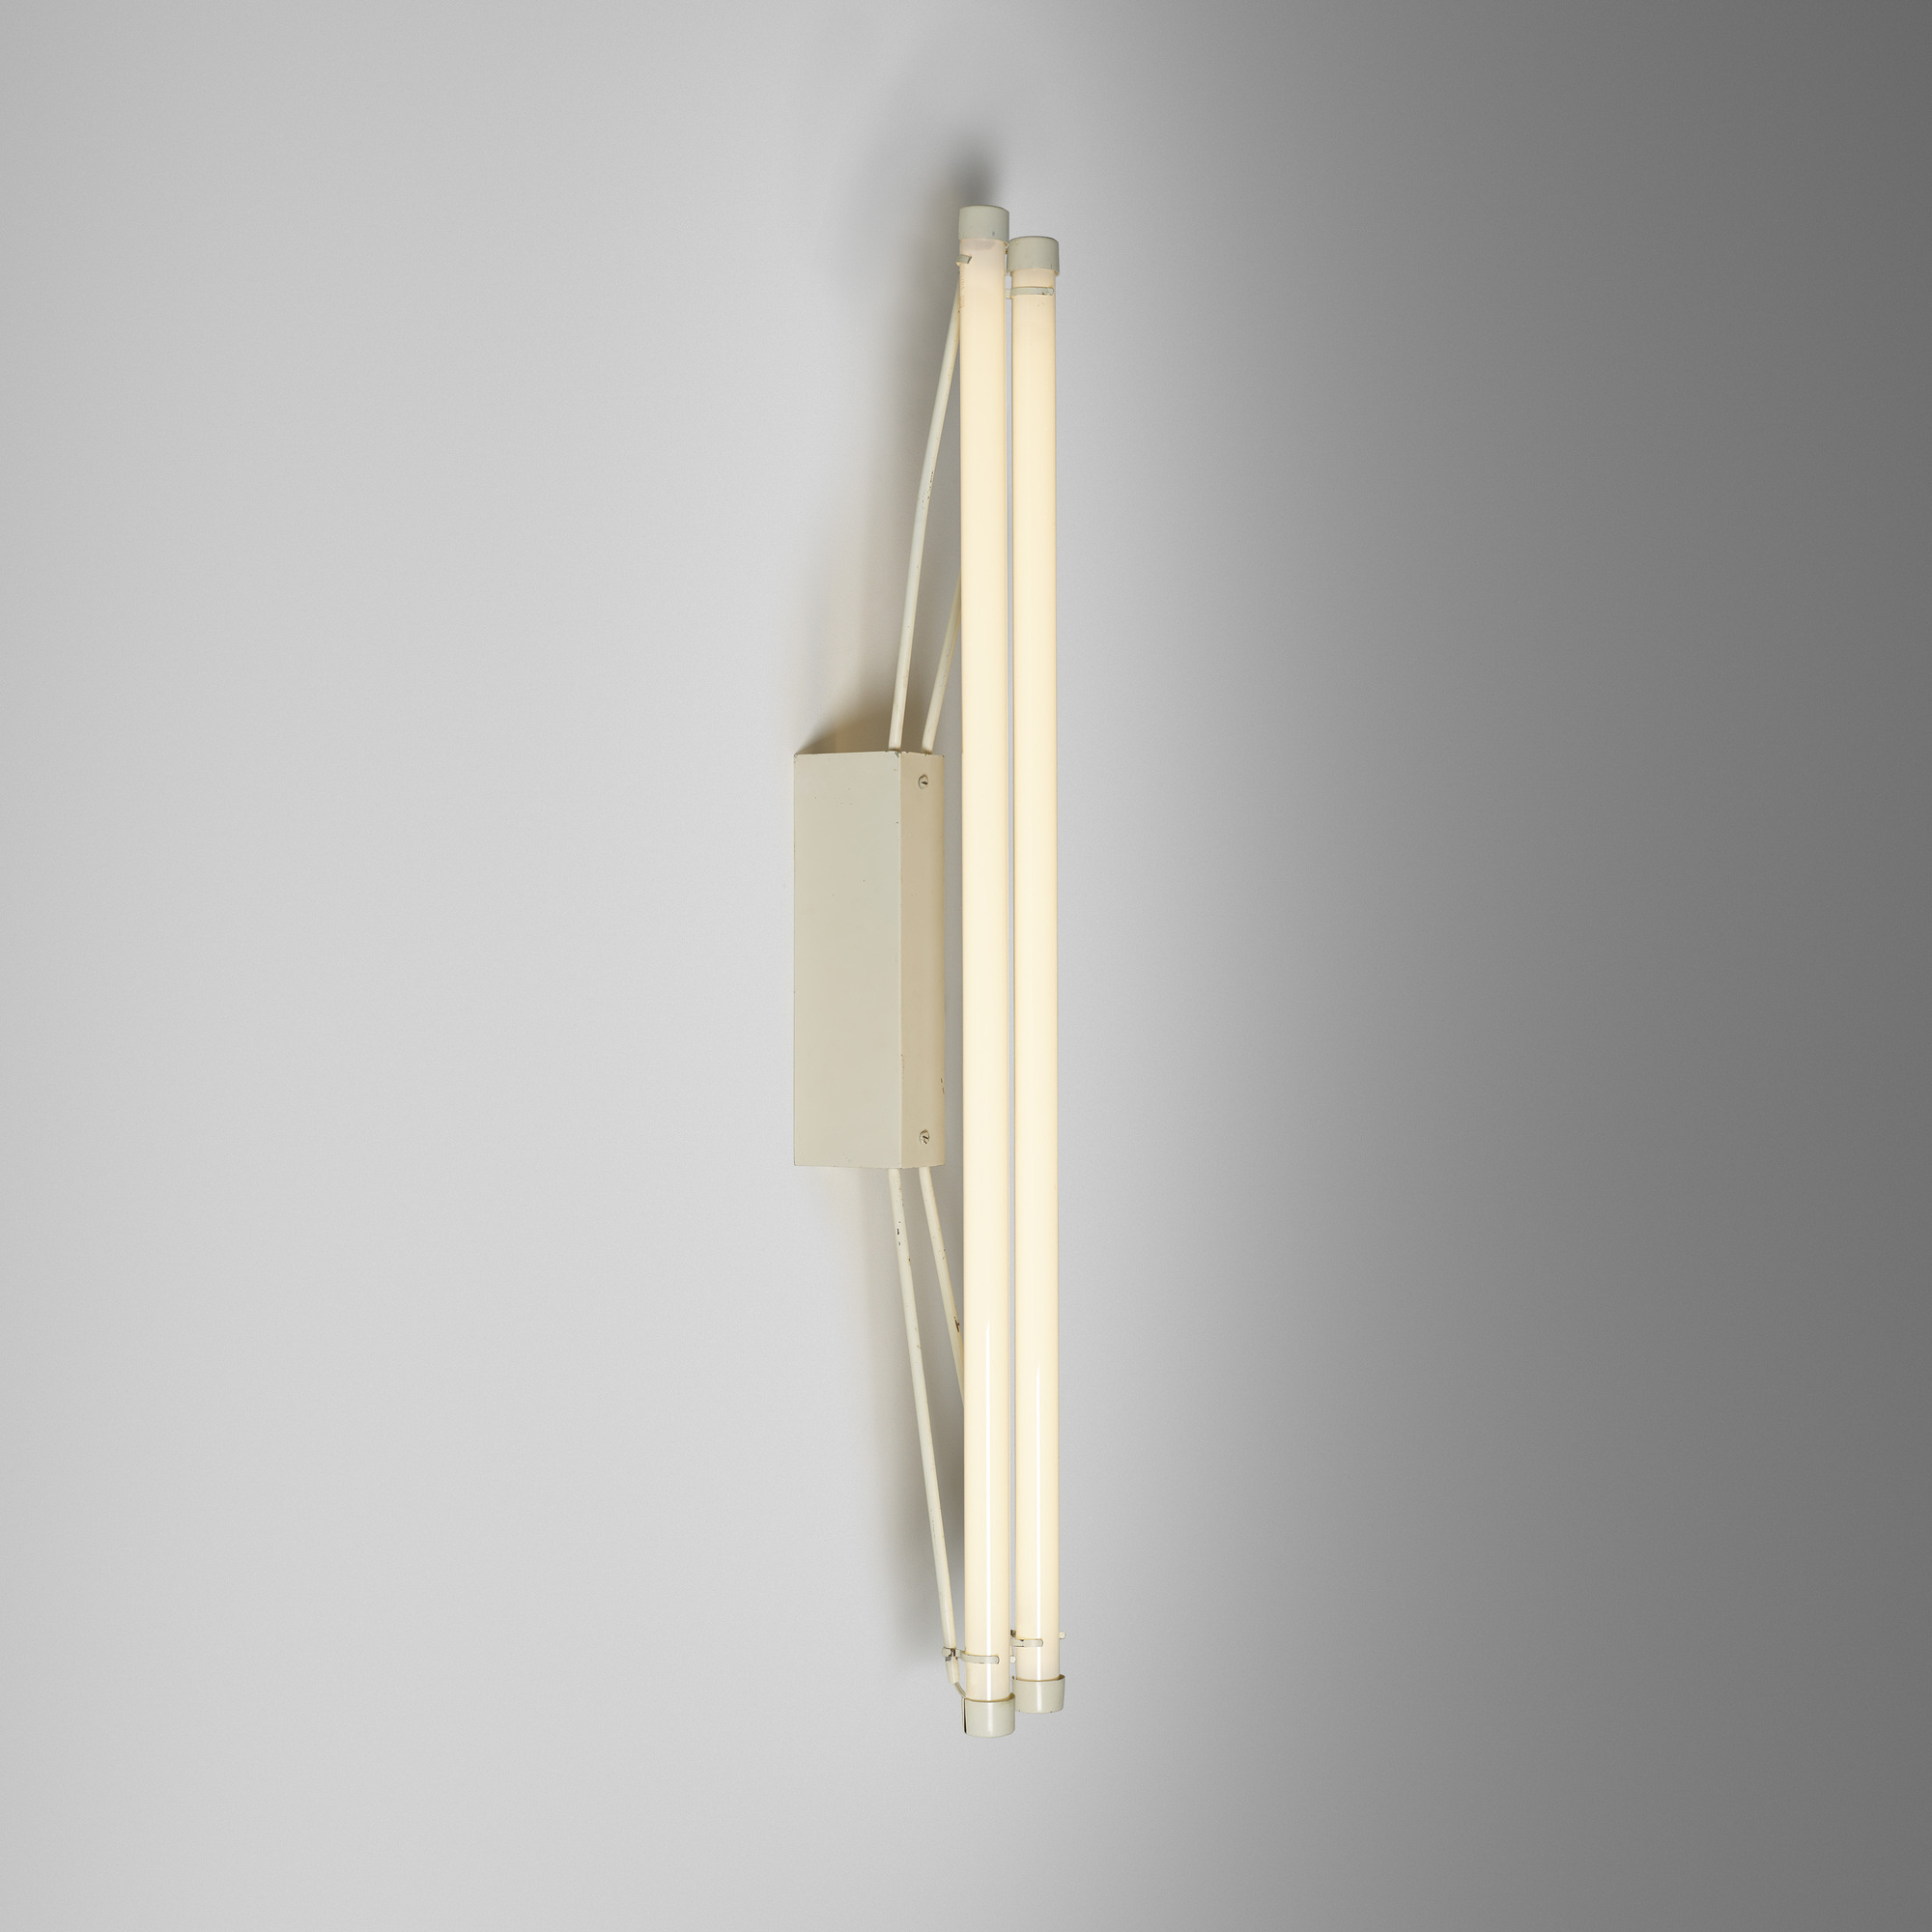 262: Gino Sarfatti / Ceiling/wall Light, Model 3026.40 (1 Of 2